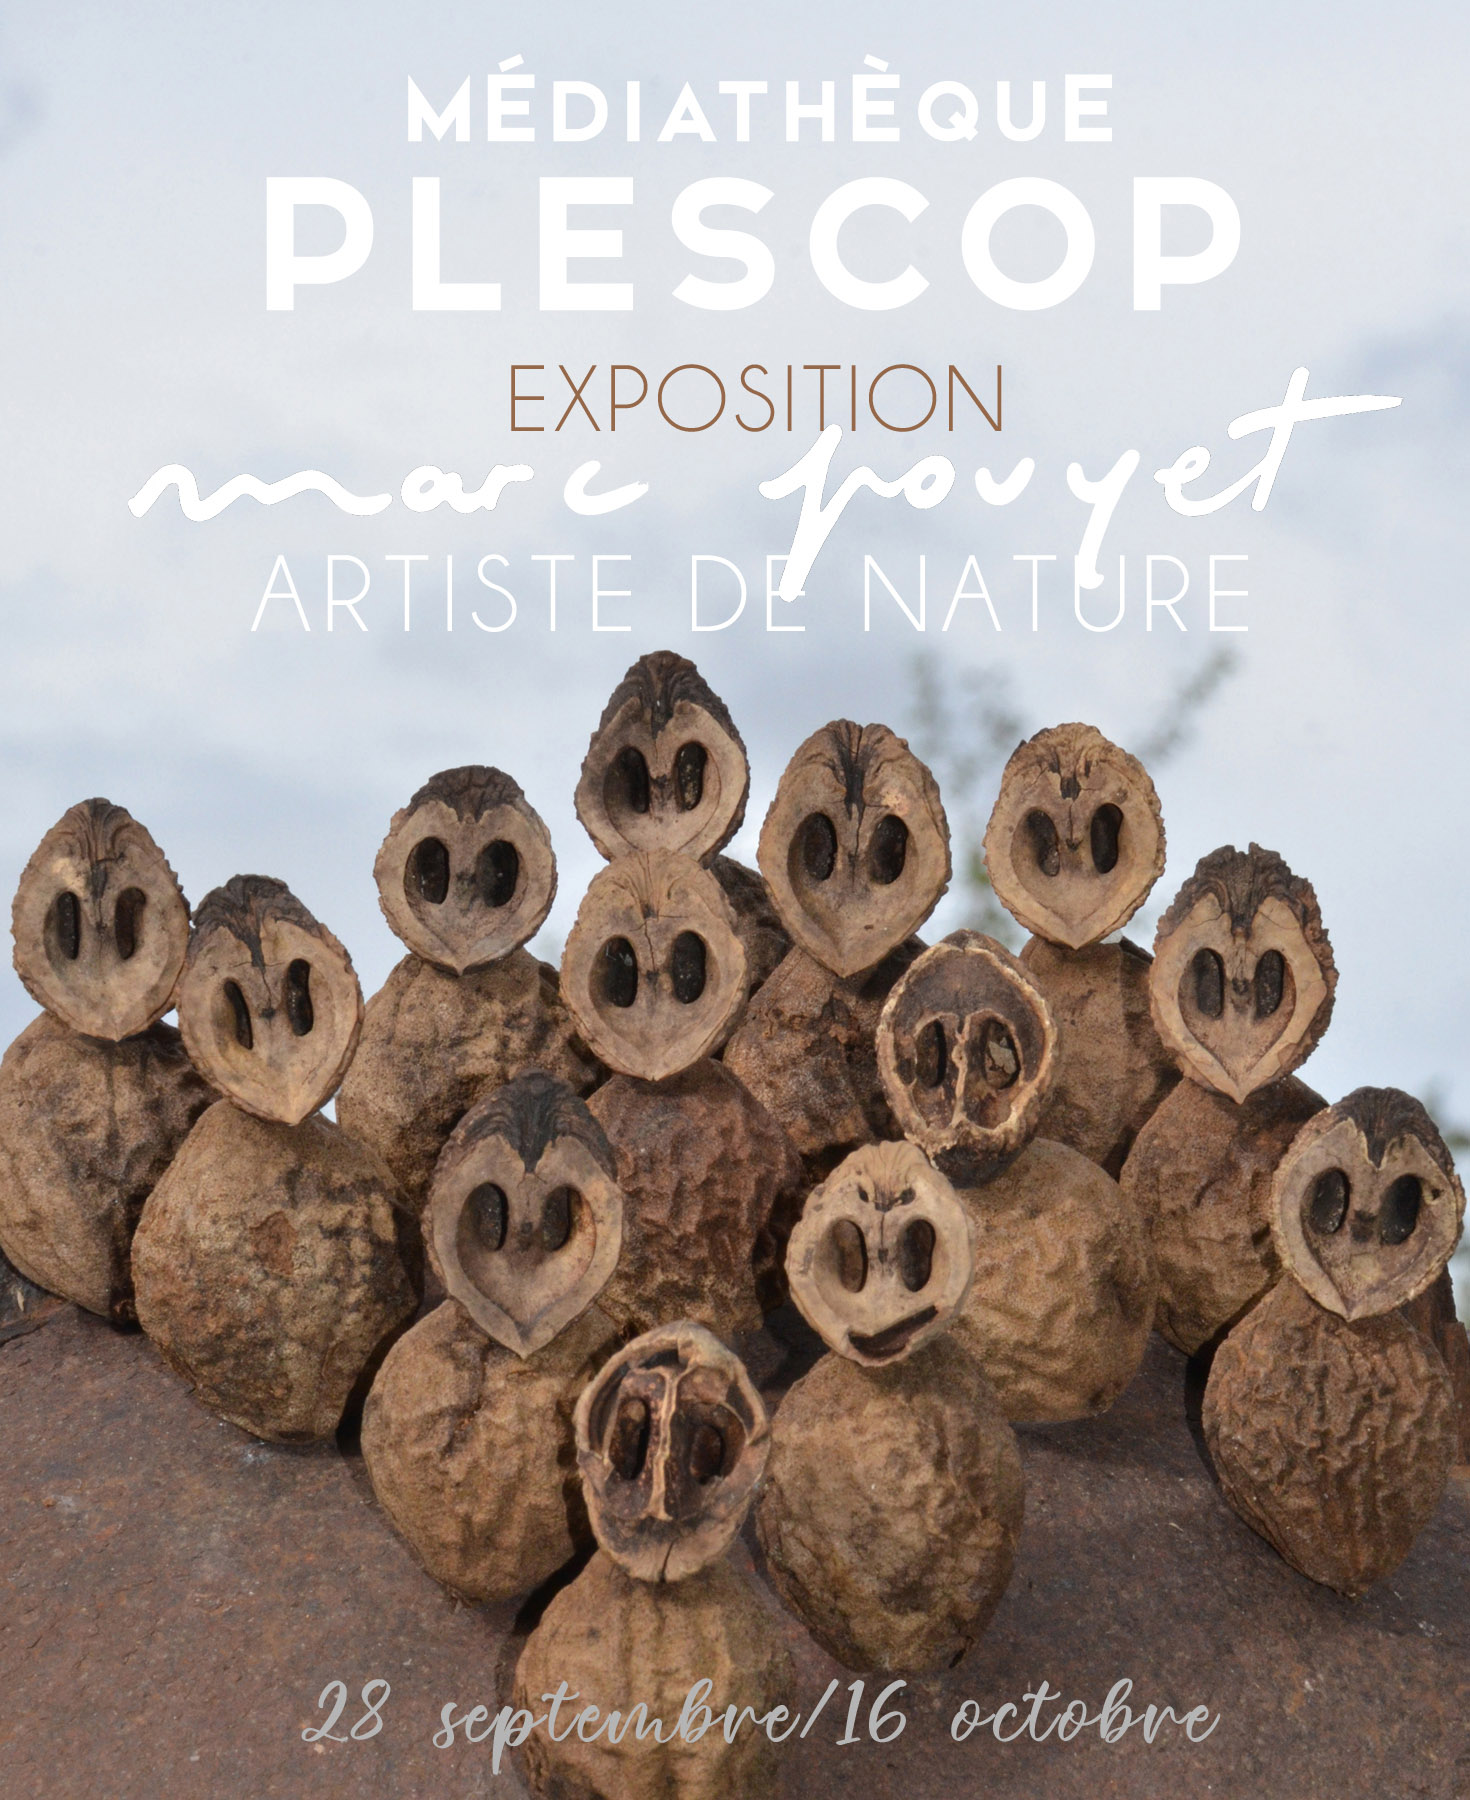 ARTICLE EXPOSITION PLESCOP M